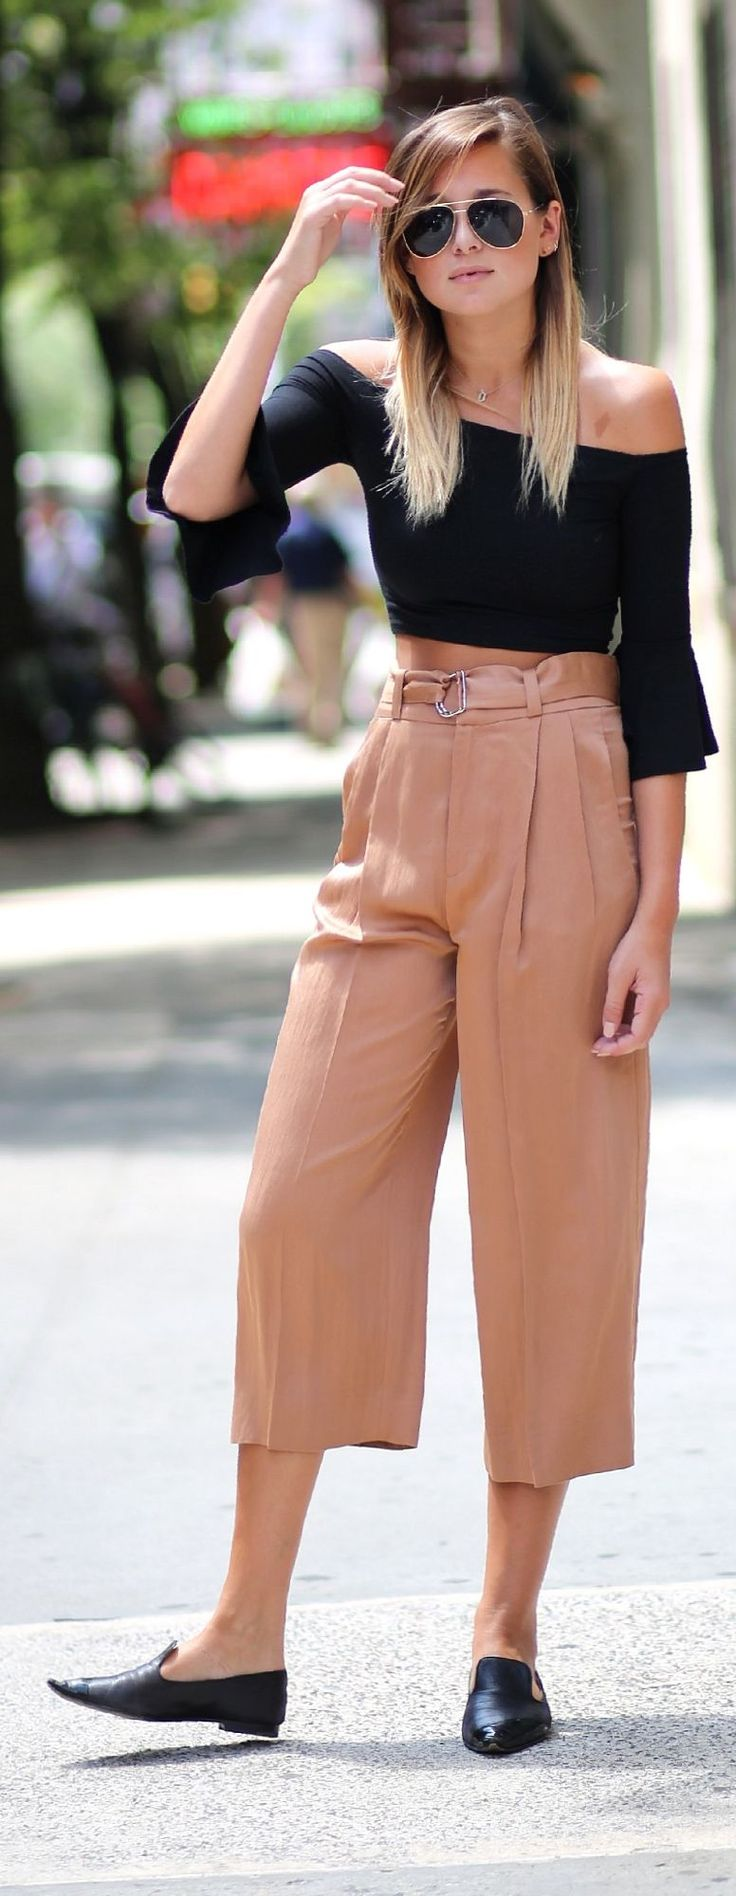 #weworewhat #style Zara Apricot Belted High Waisted Culotte Pants by We Wore What